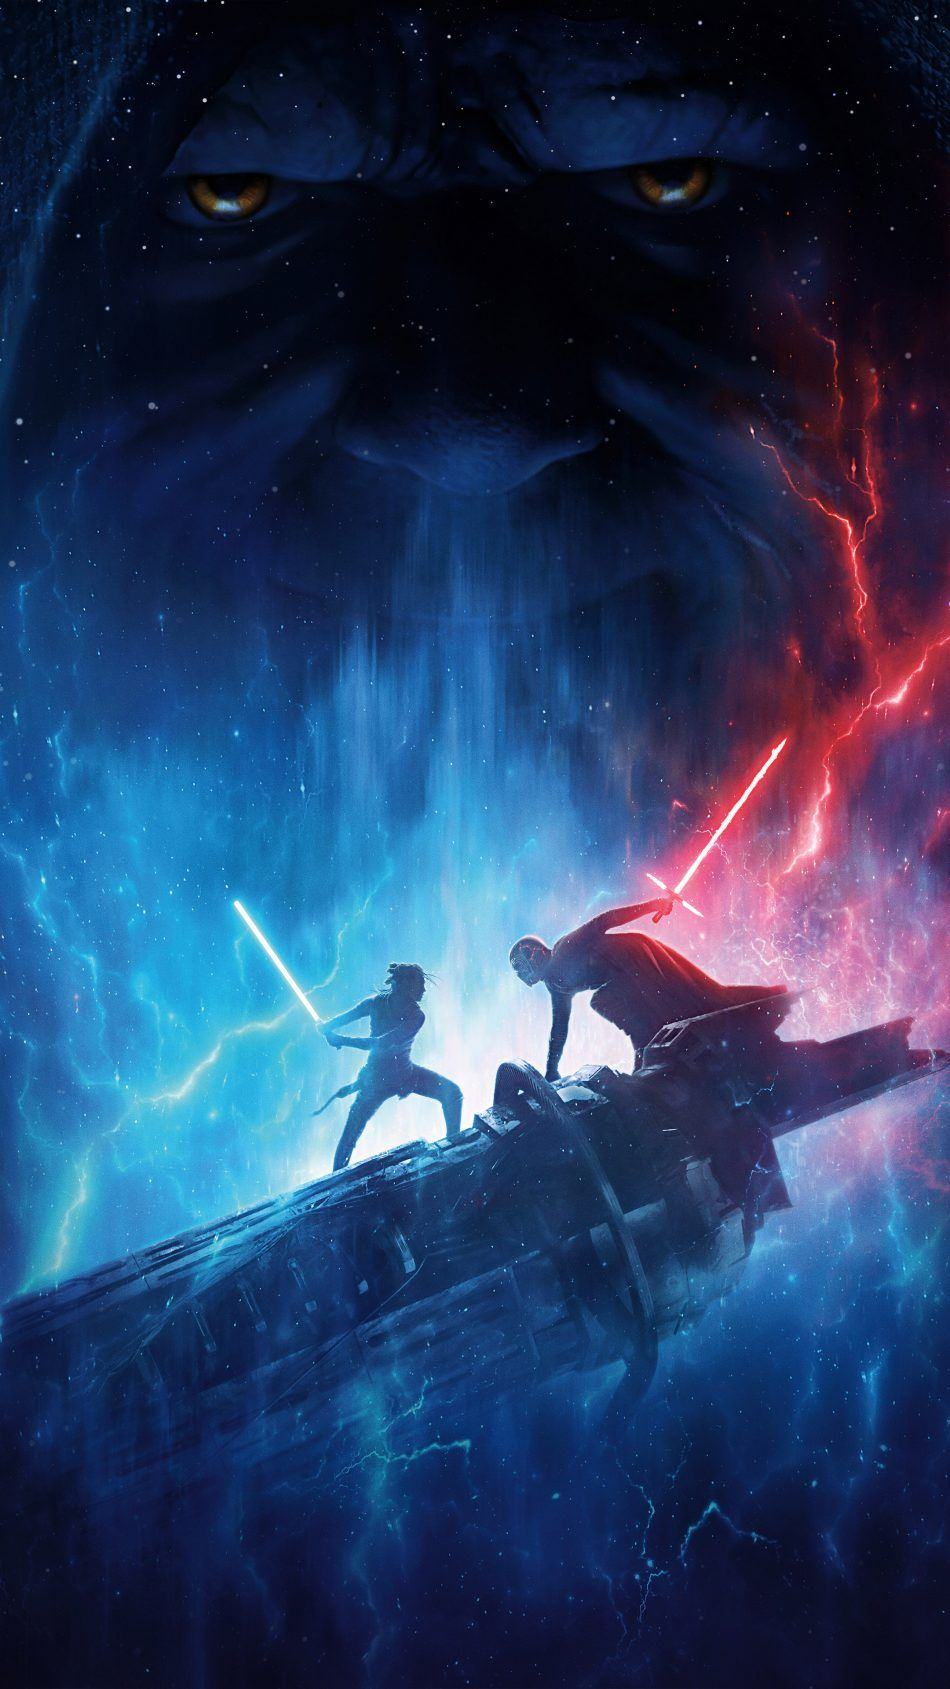 Star Wars The Rise Of Skywalker 2019 4k Ultra Hd Mobile Wallpaper Star Wars Wallpaper Iphone Star Wars Background Star Wars Wallpaper